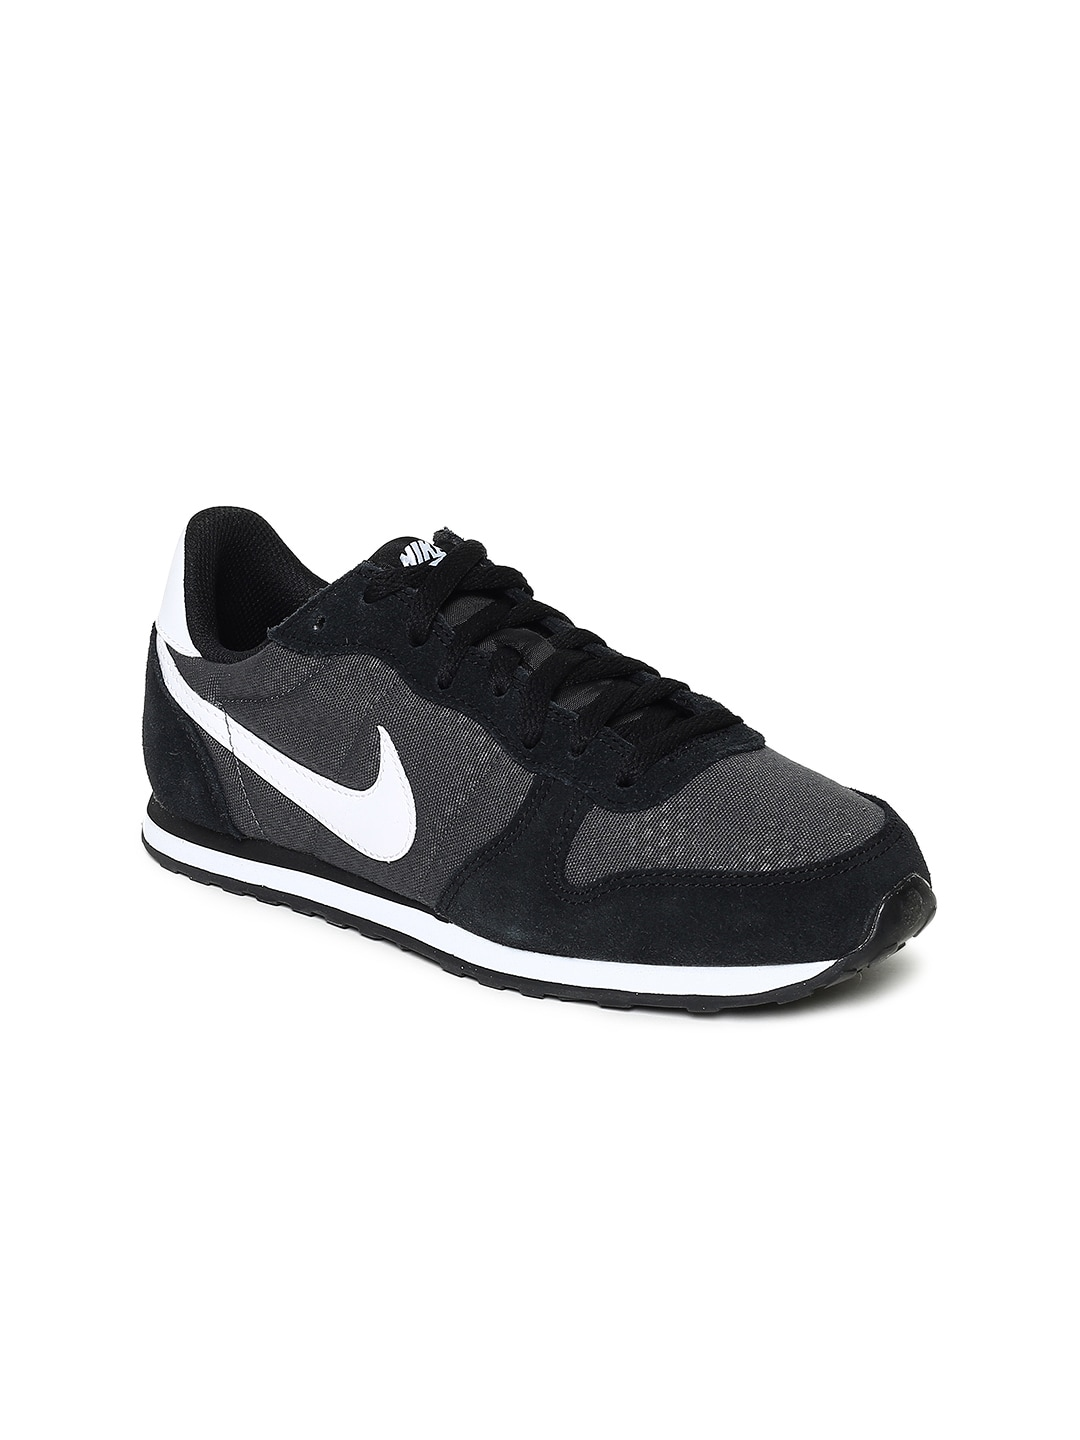 online store 20826 2dd57 Nike Black Women Shoes Casual - Buy Nike Black Women Shoes Casual online in  India